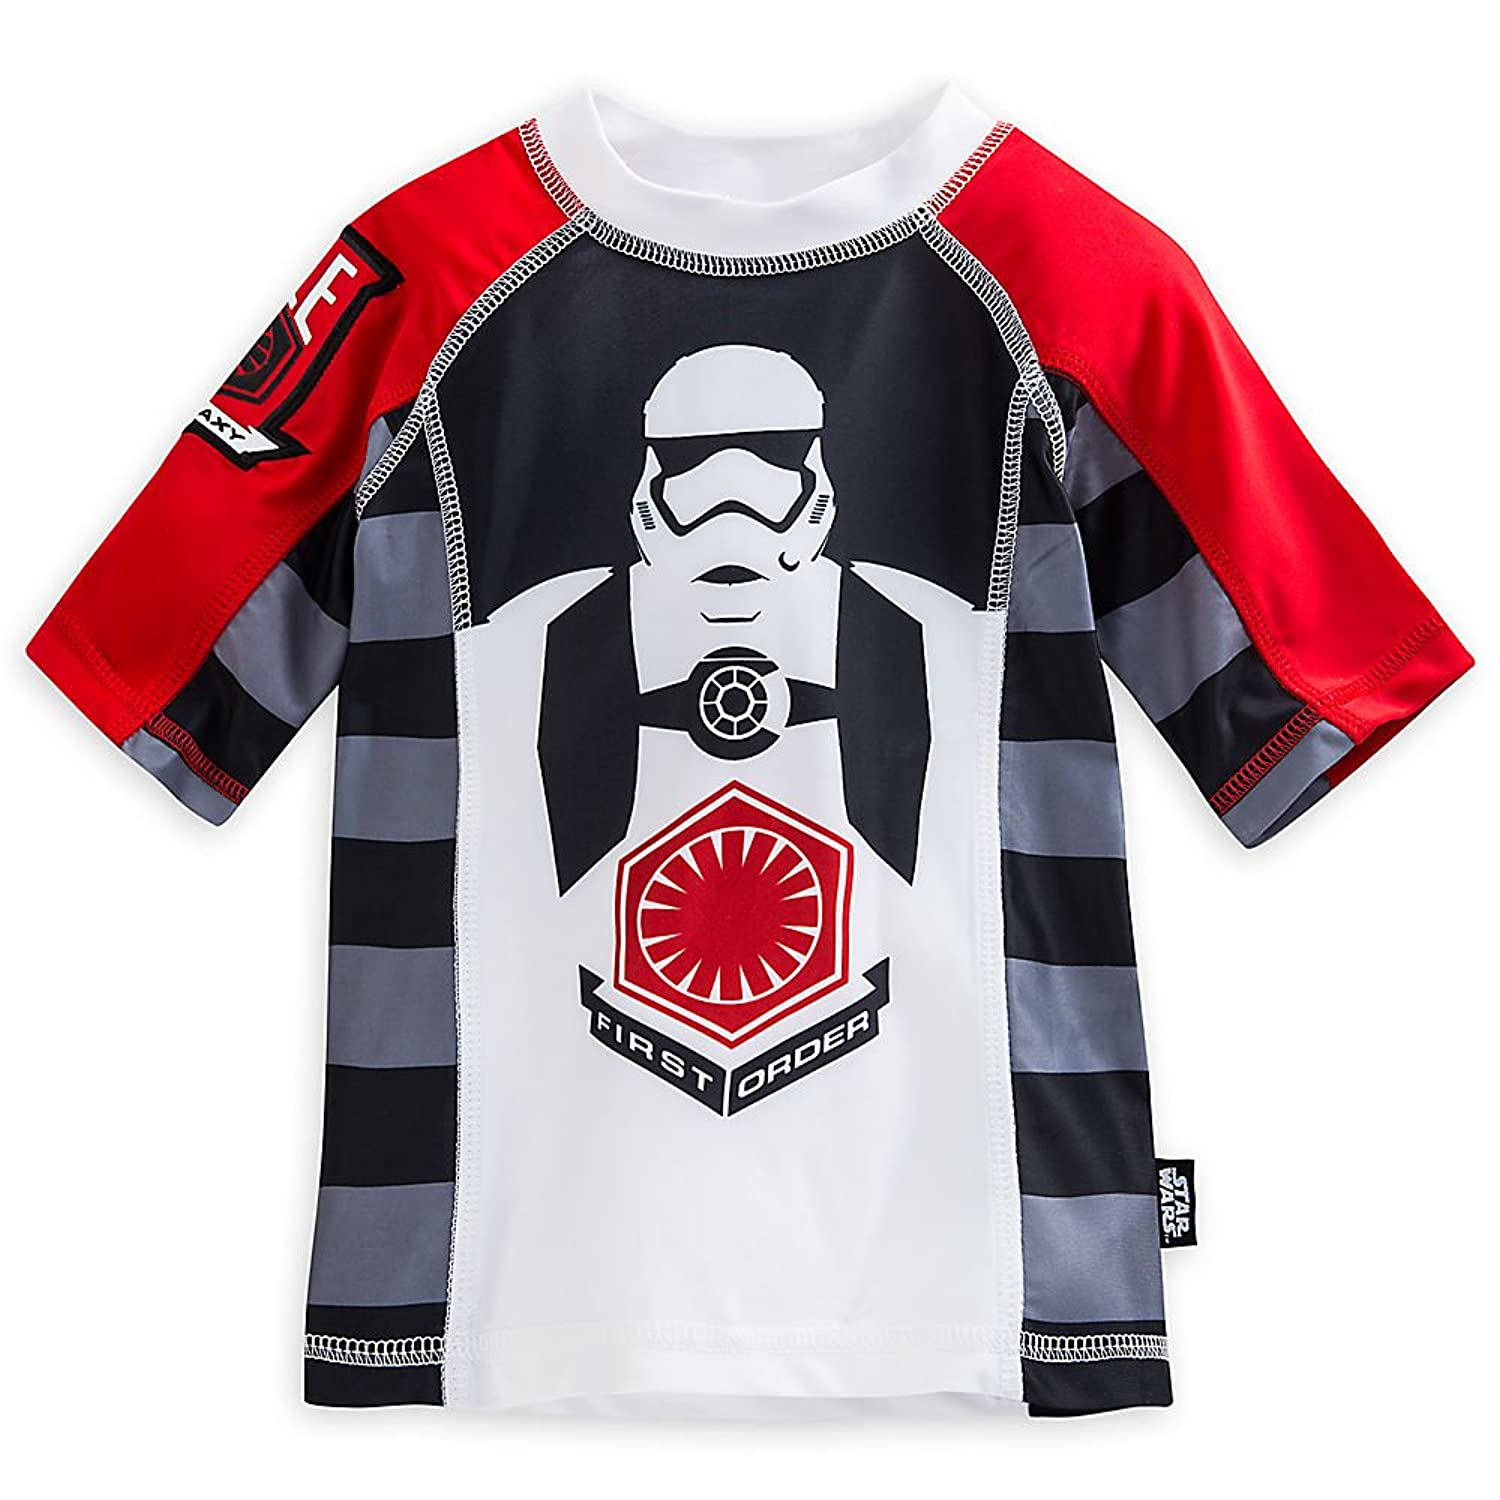 Disney Store Star Wars The Force Awakens